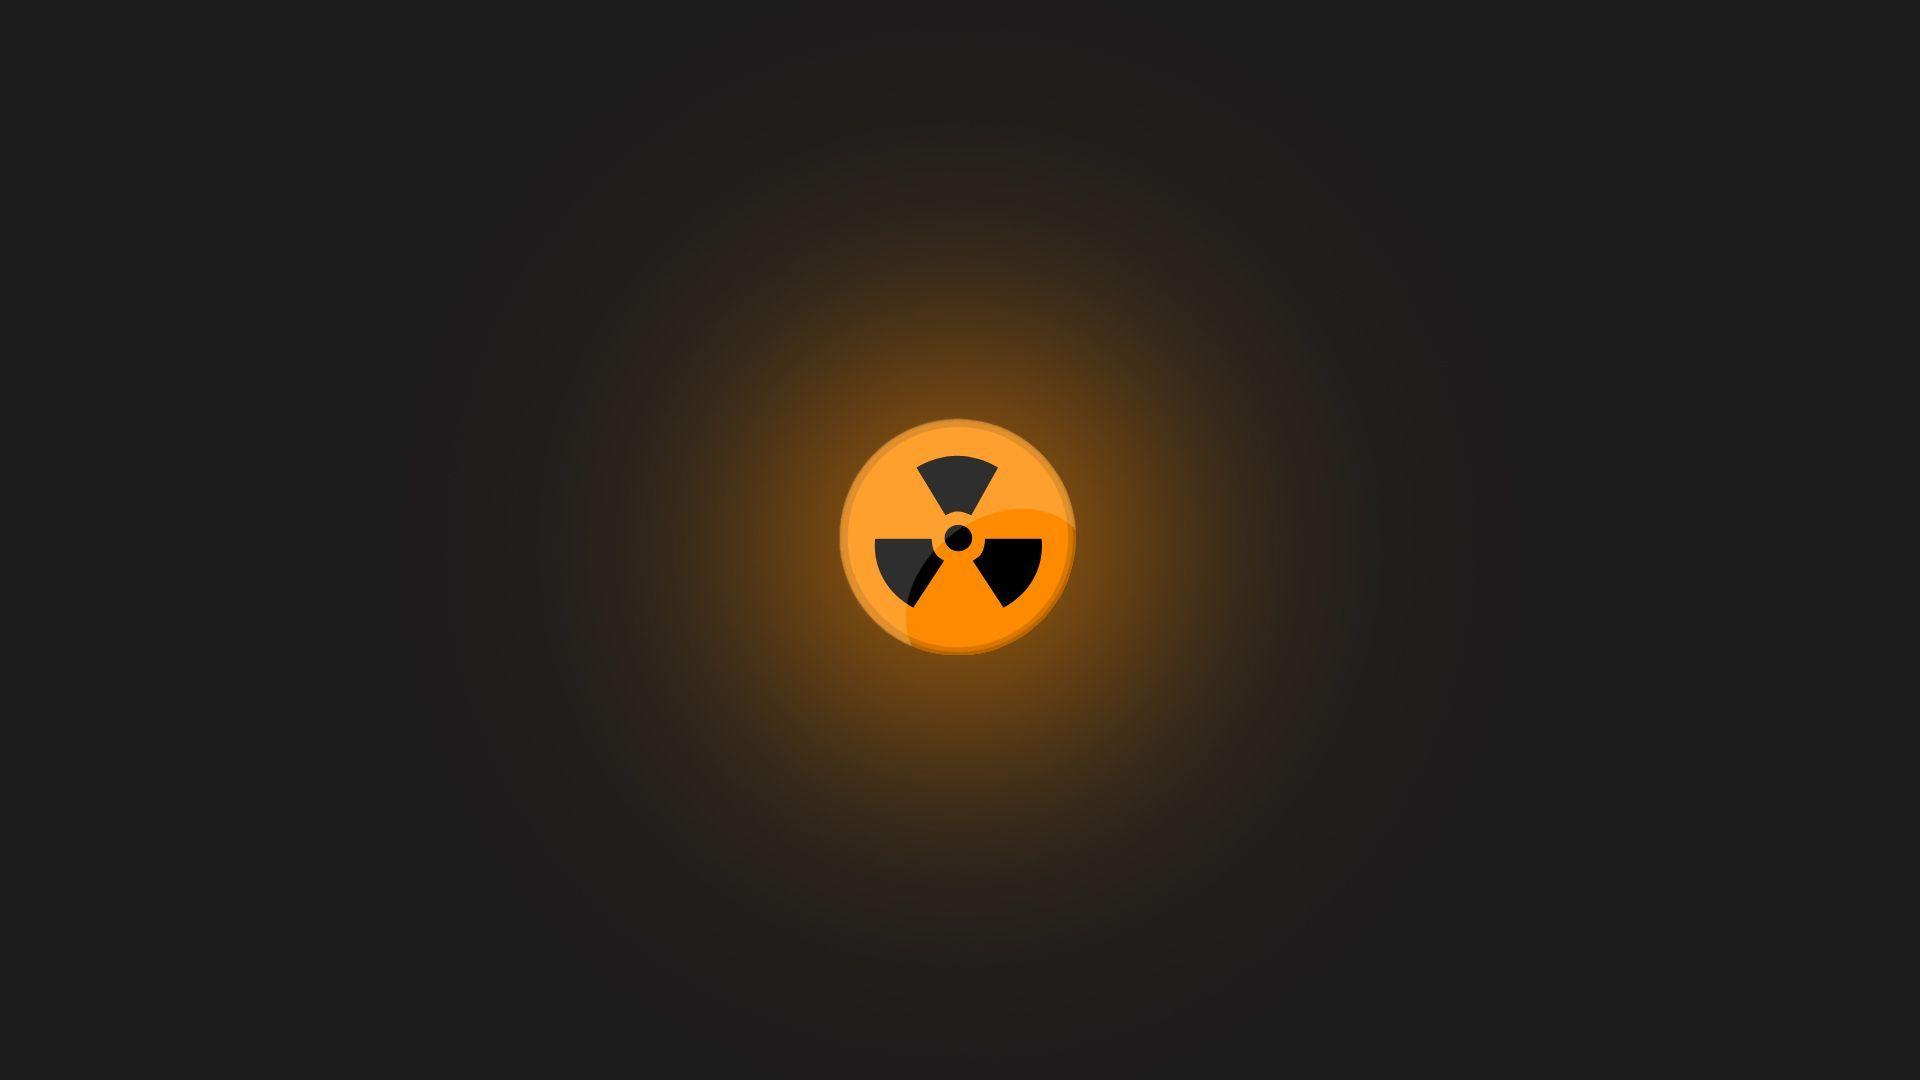 Image For > Nuke Wallpapers